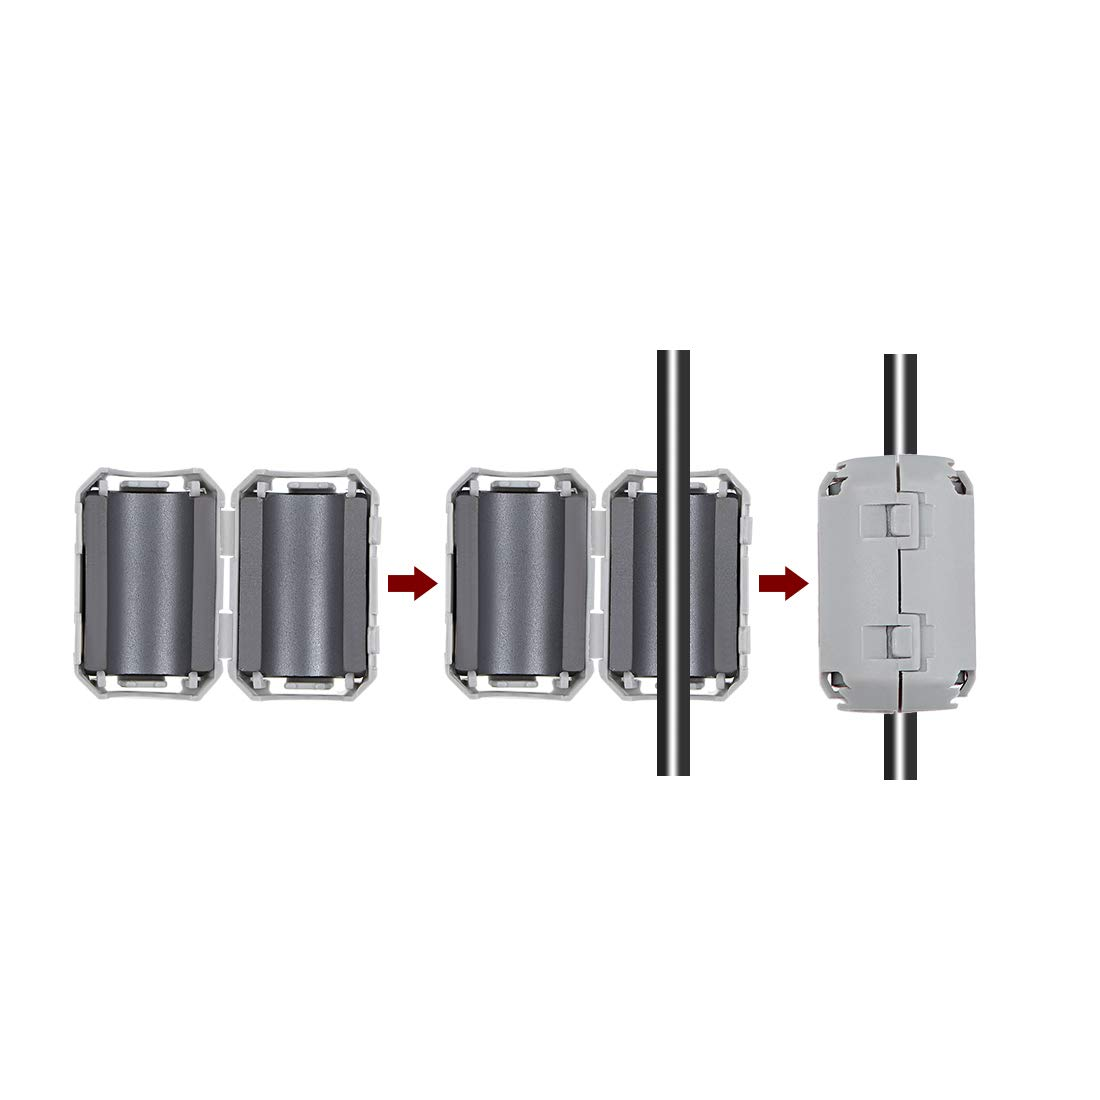 uxcell 7mm Ferrite Cores Ring Clip-On RFI EMI Noise Suppression Filter Cable Clip Black 5pcs